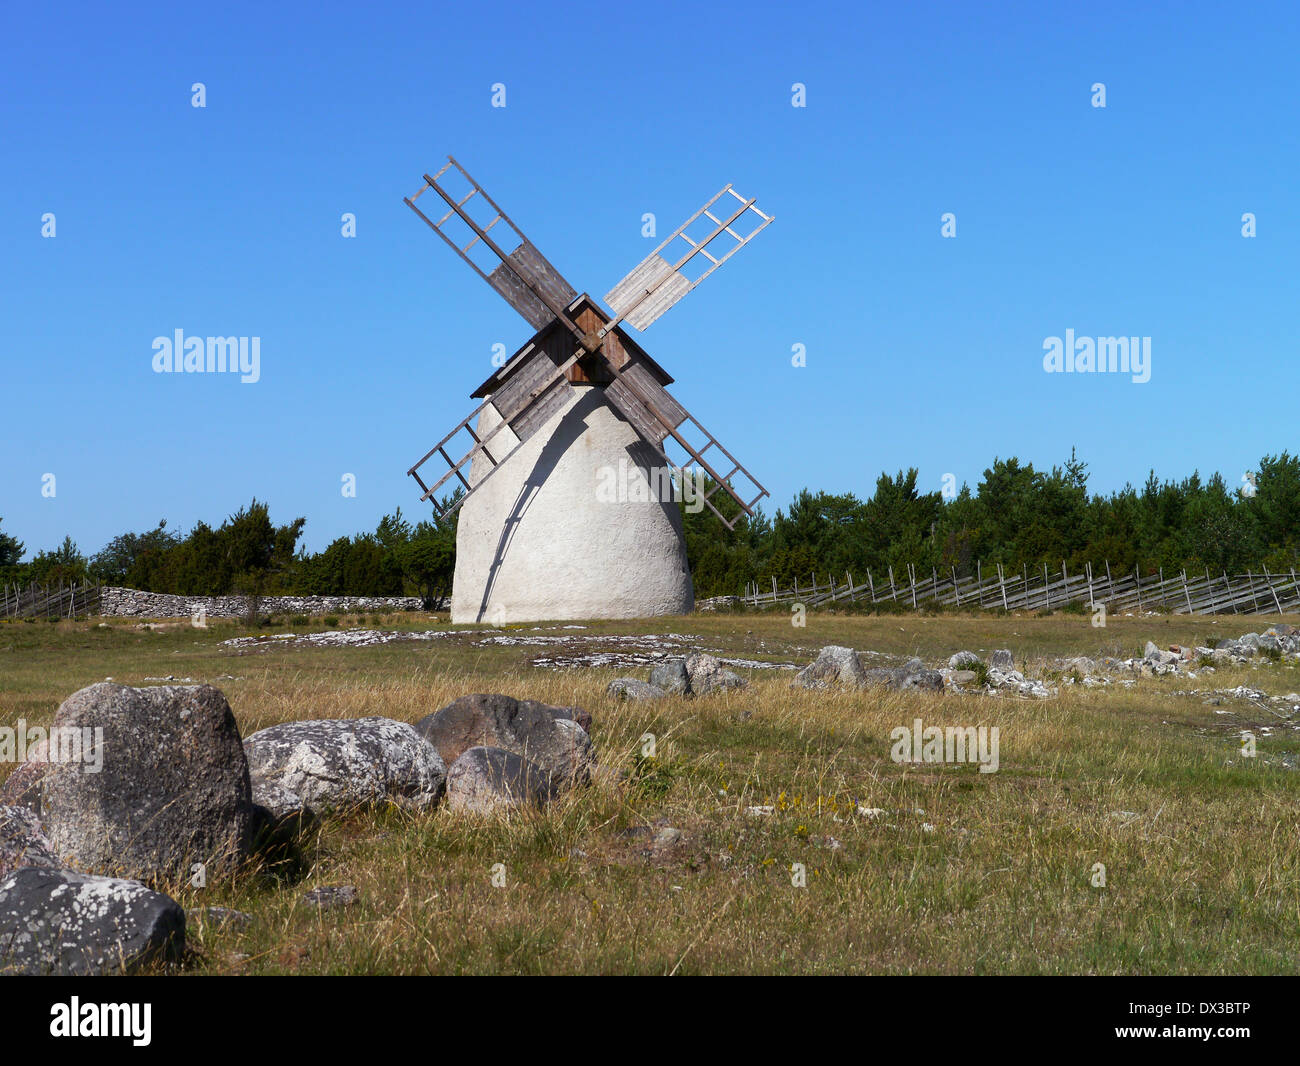 windmill at gotland, gotlands län, sweden - Stock Image